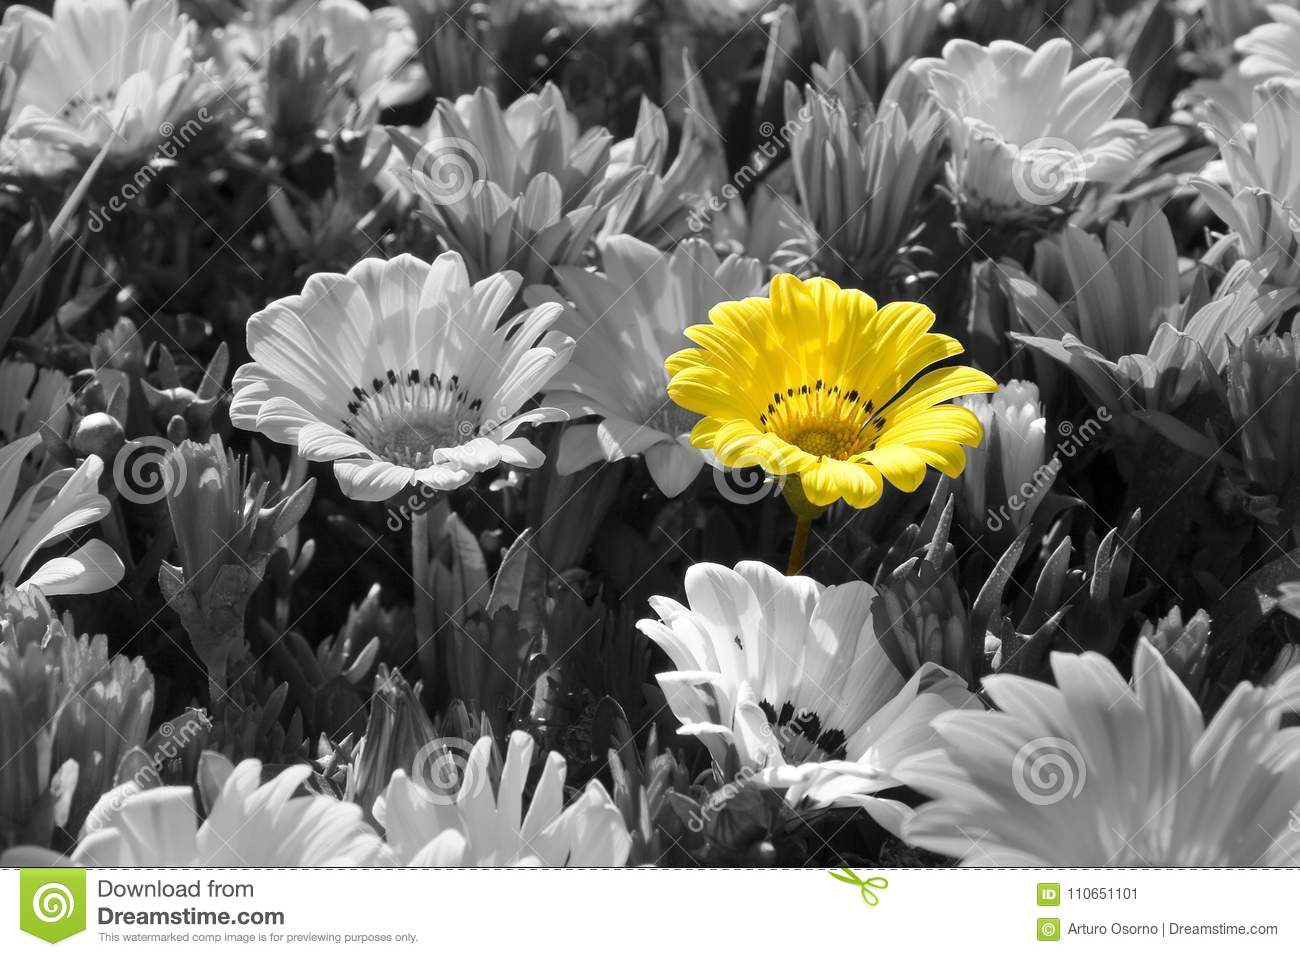 Flowers on black and white one in yellow color